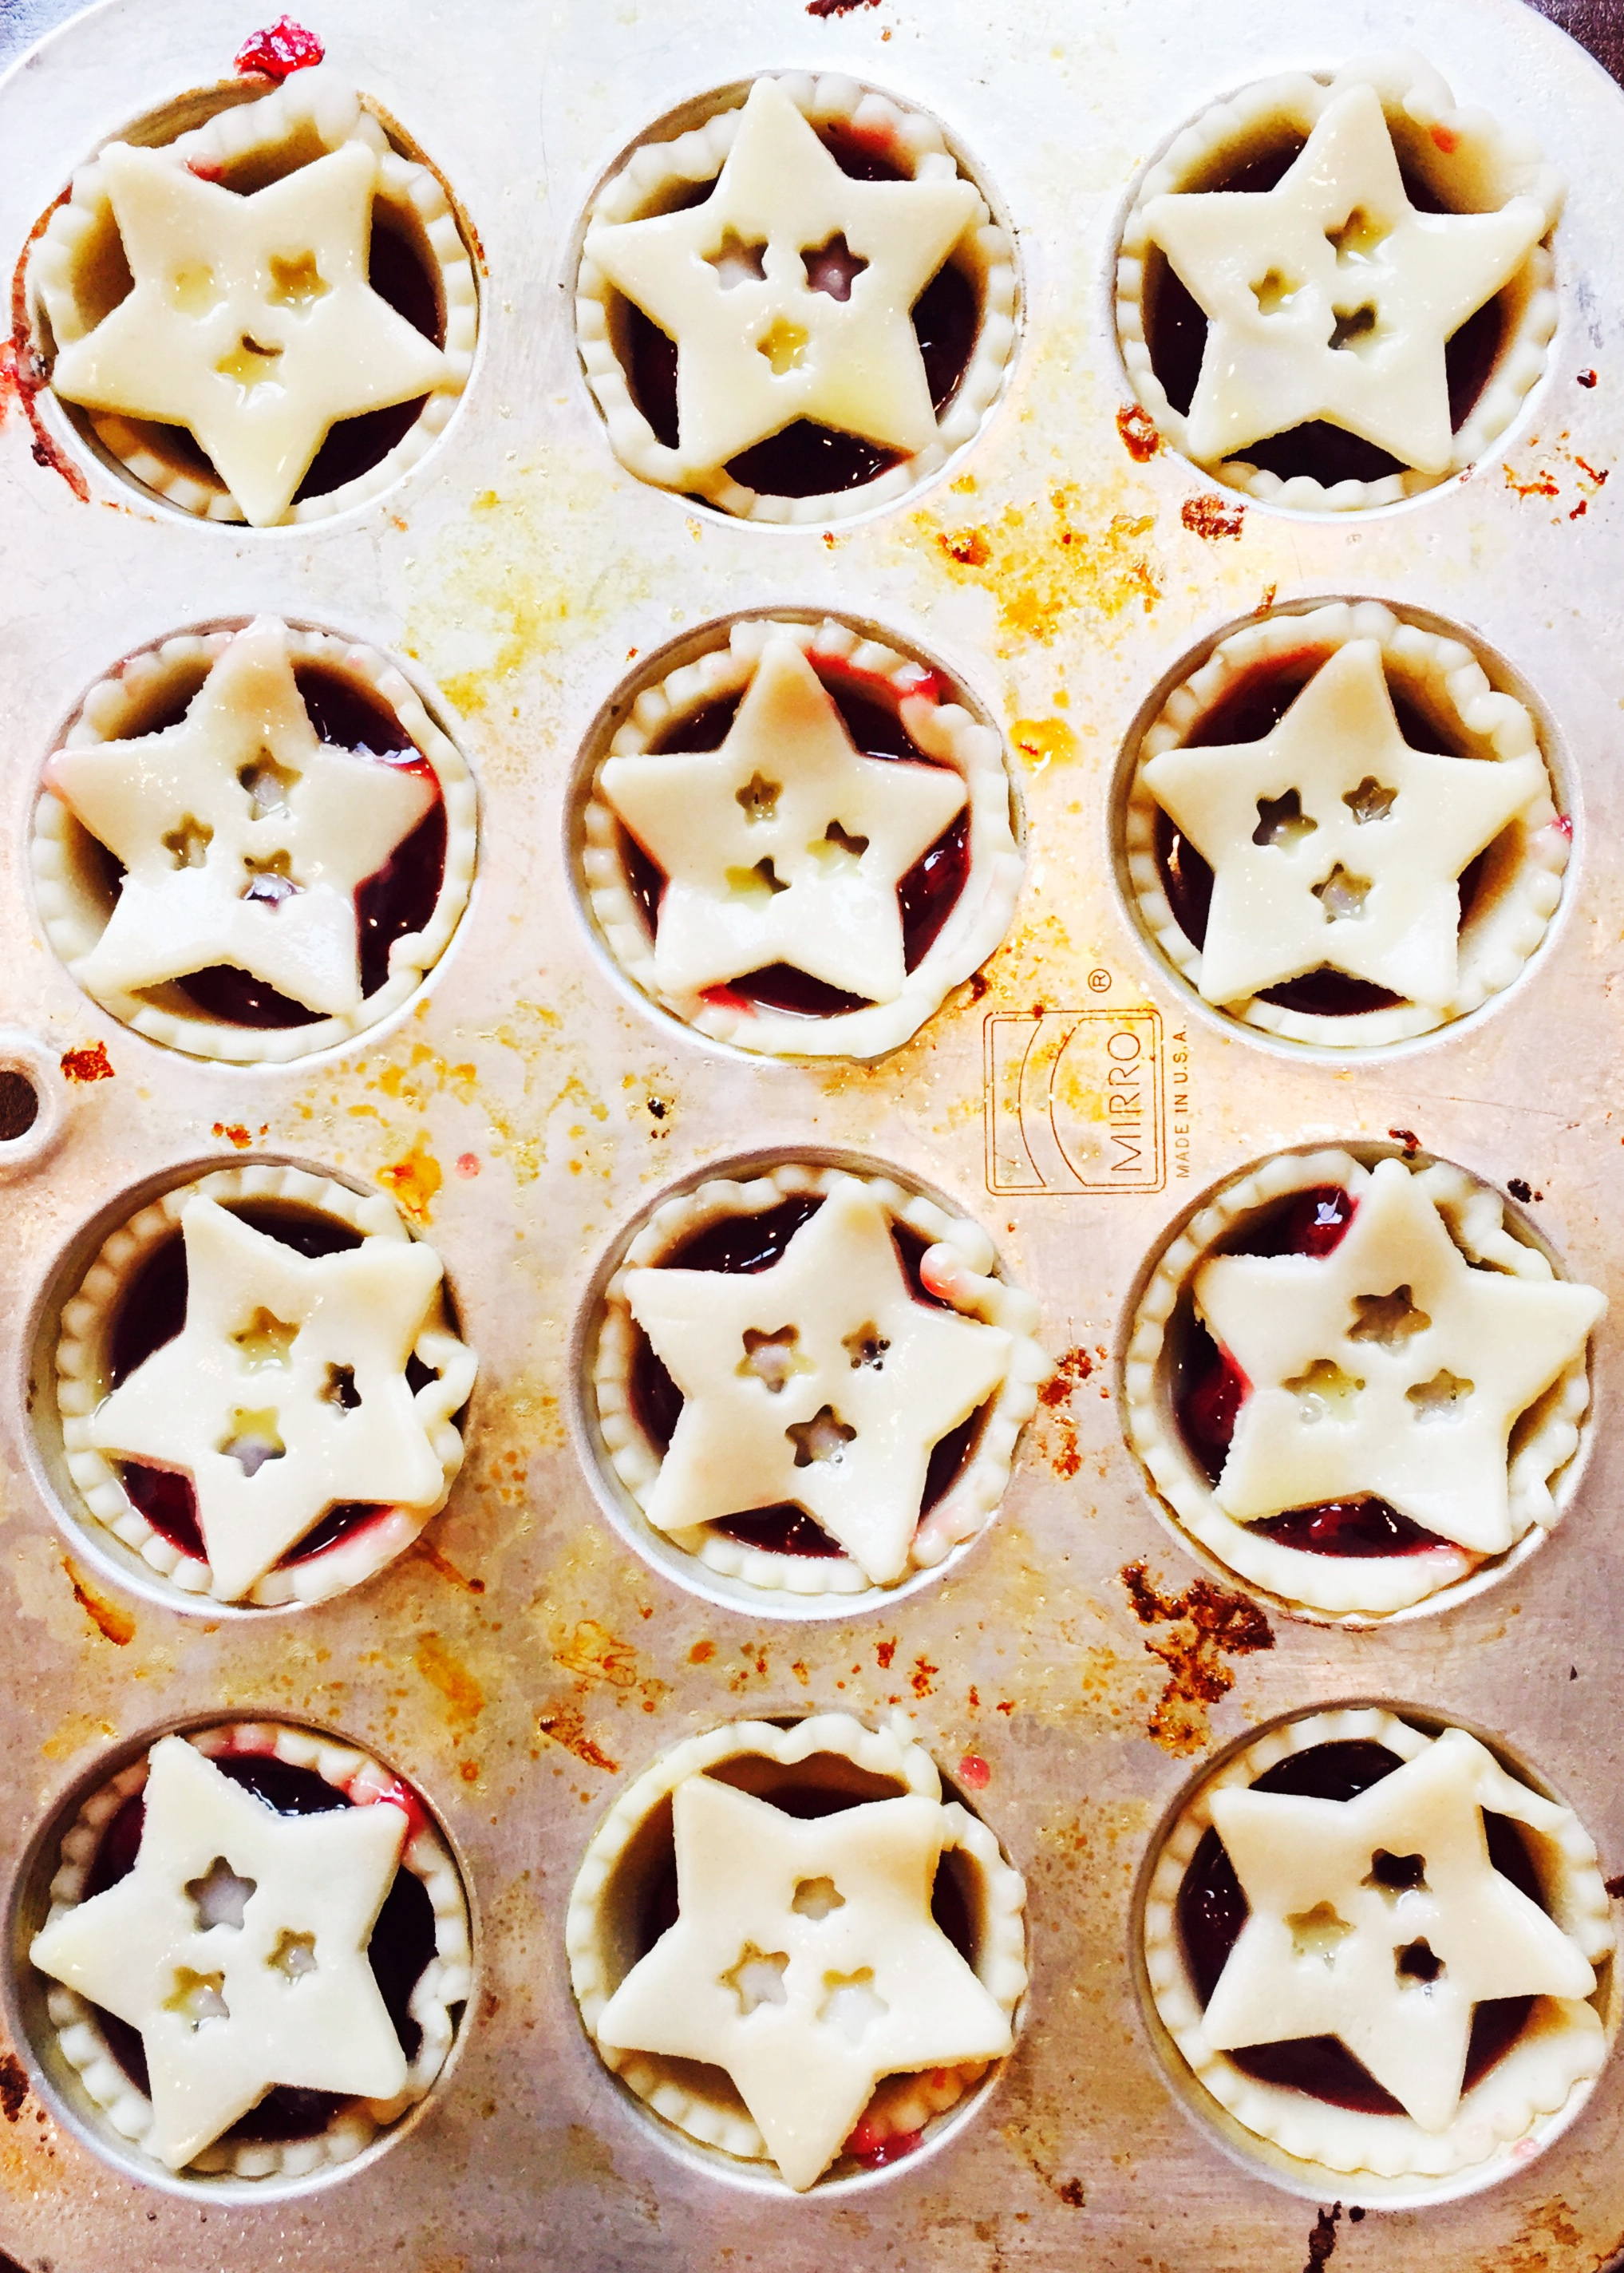 dd cherry tartlets.jpg